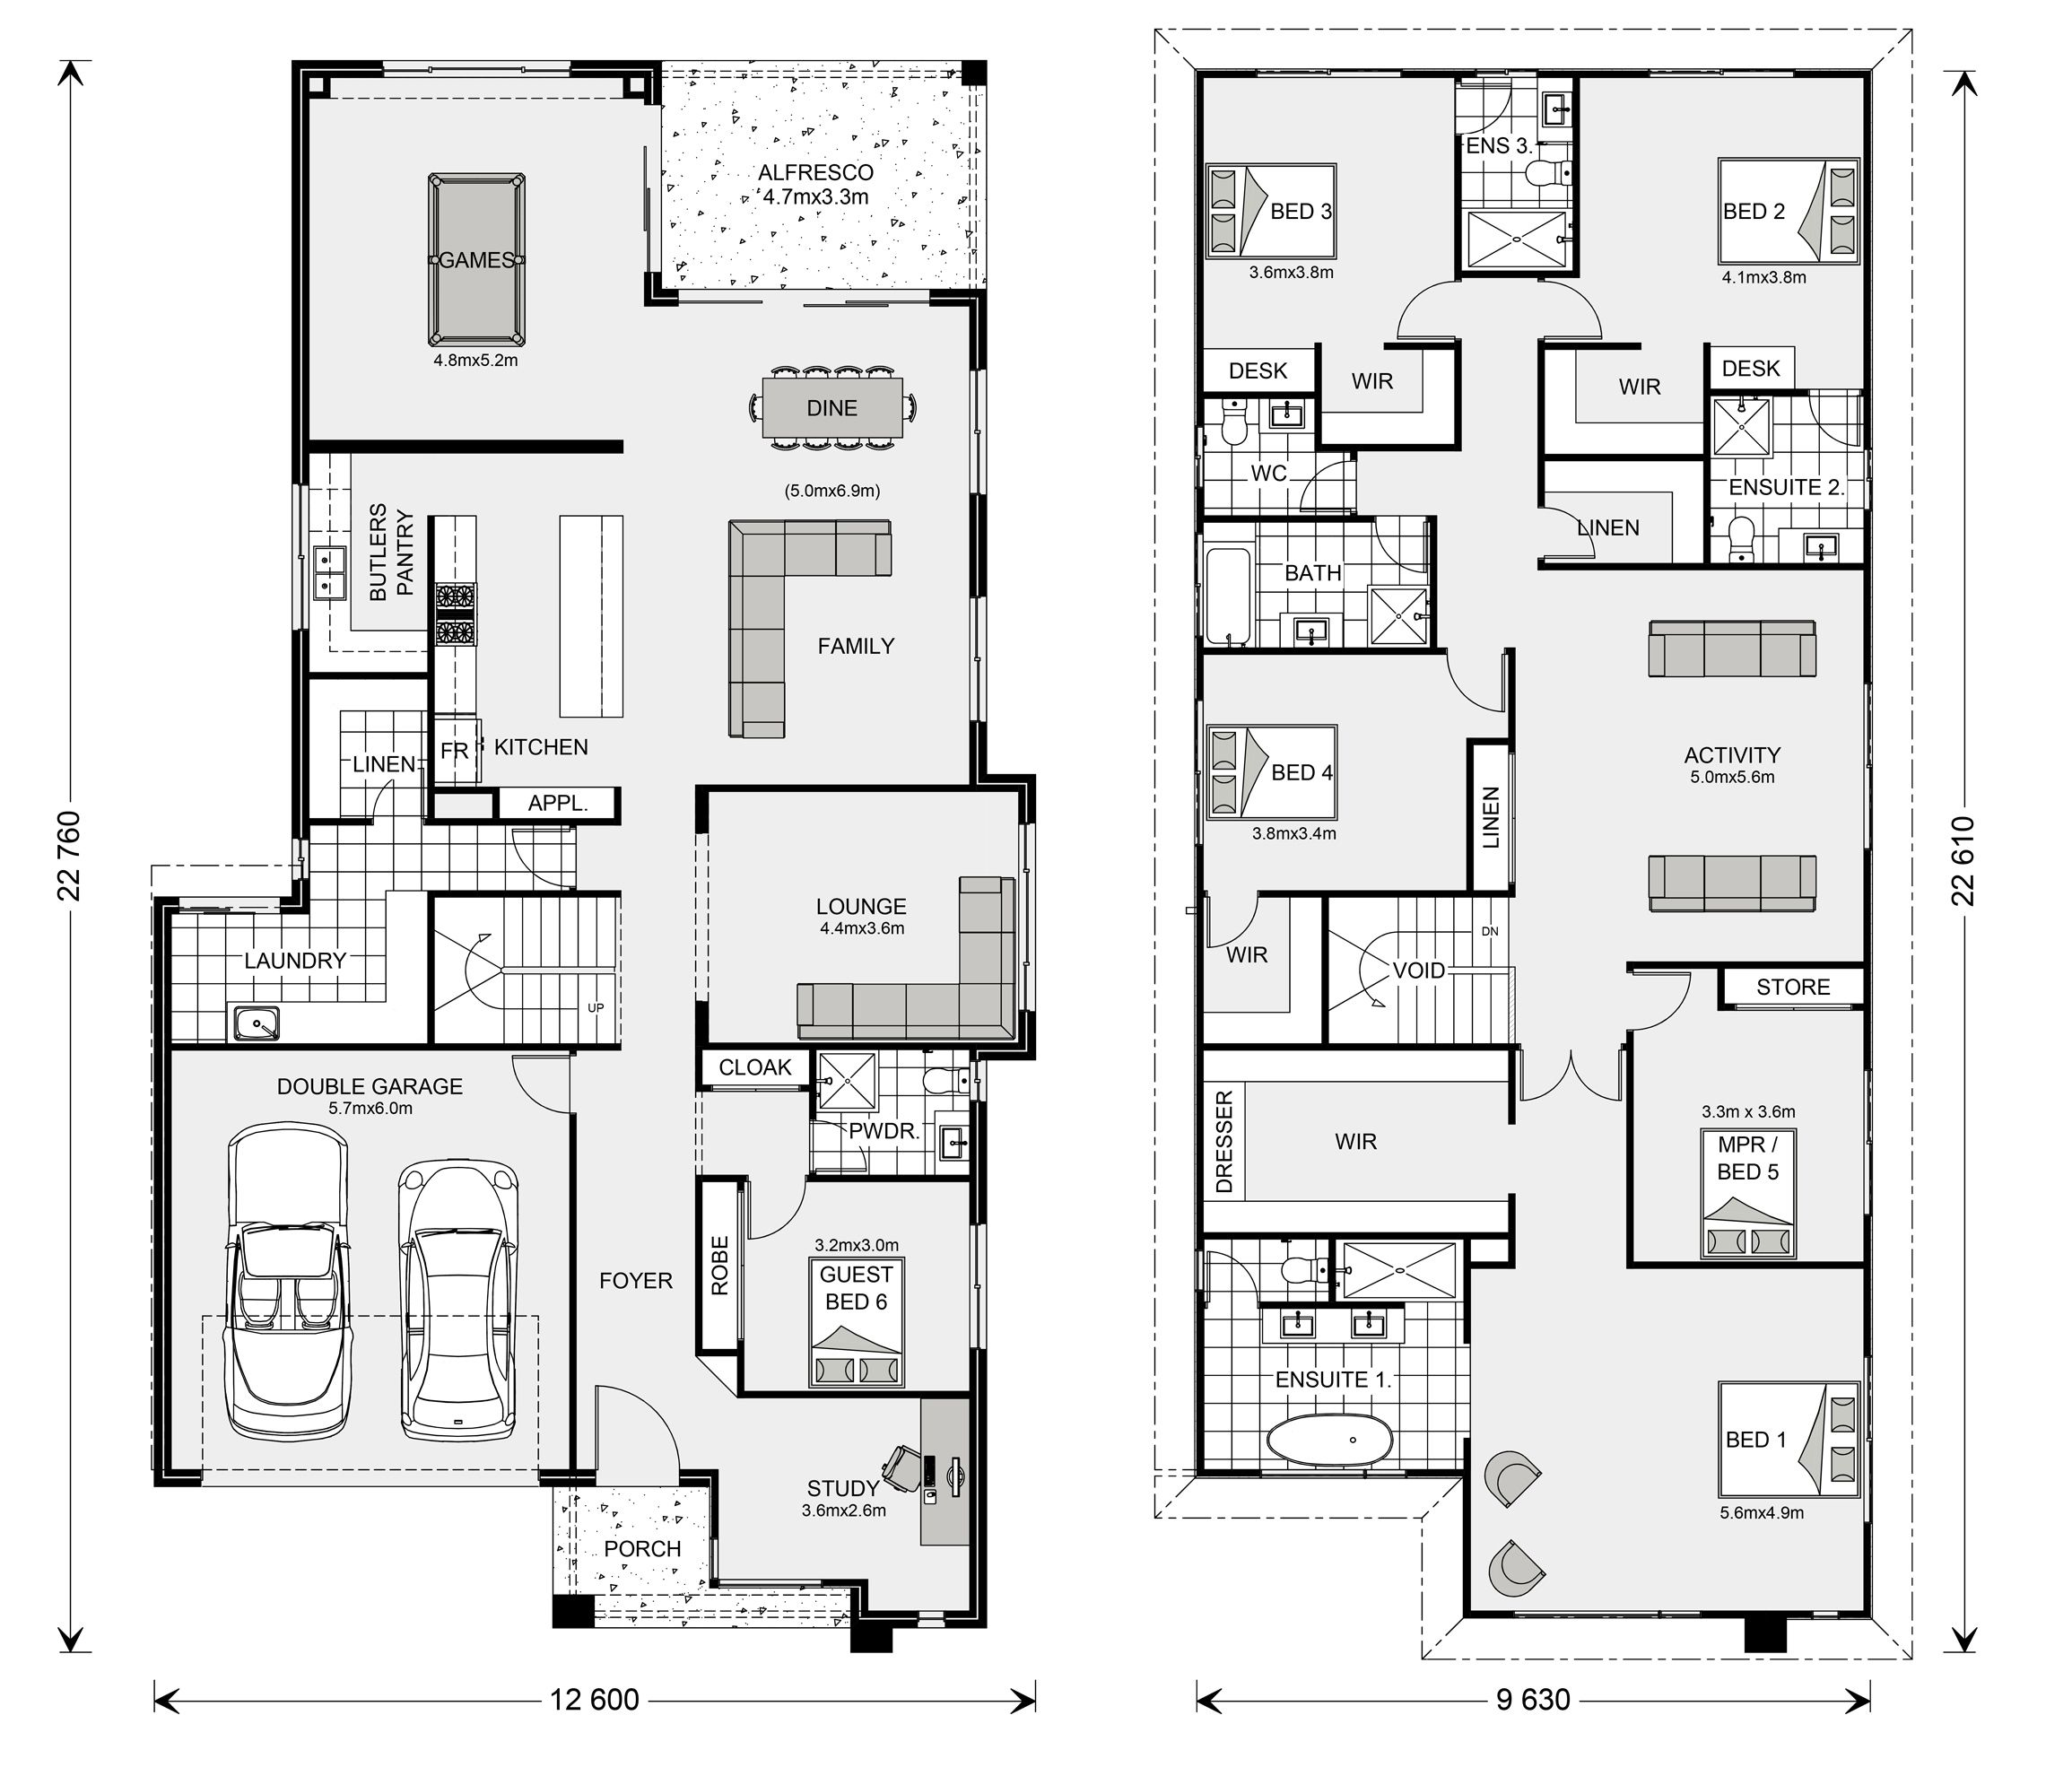 Manhattan 440 Home Designs In Jimboomba G J Gardner Homes Double Storey House Plans 6 Bedroom House Plans Family House Plans